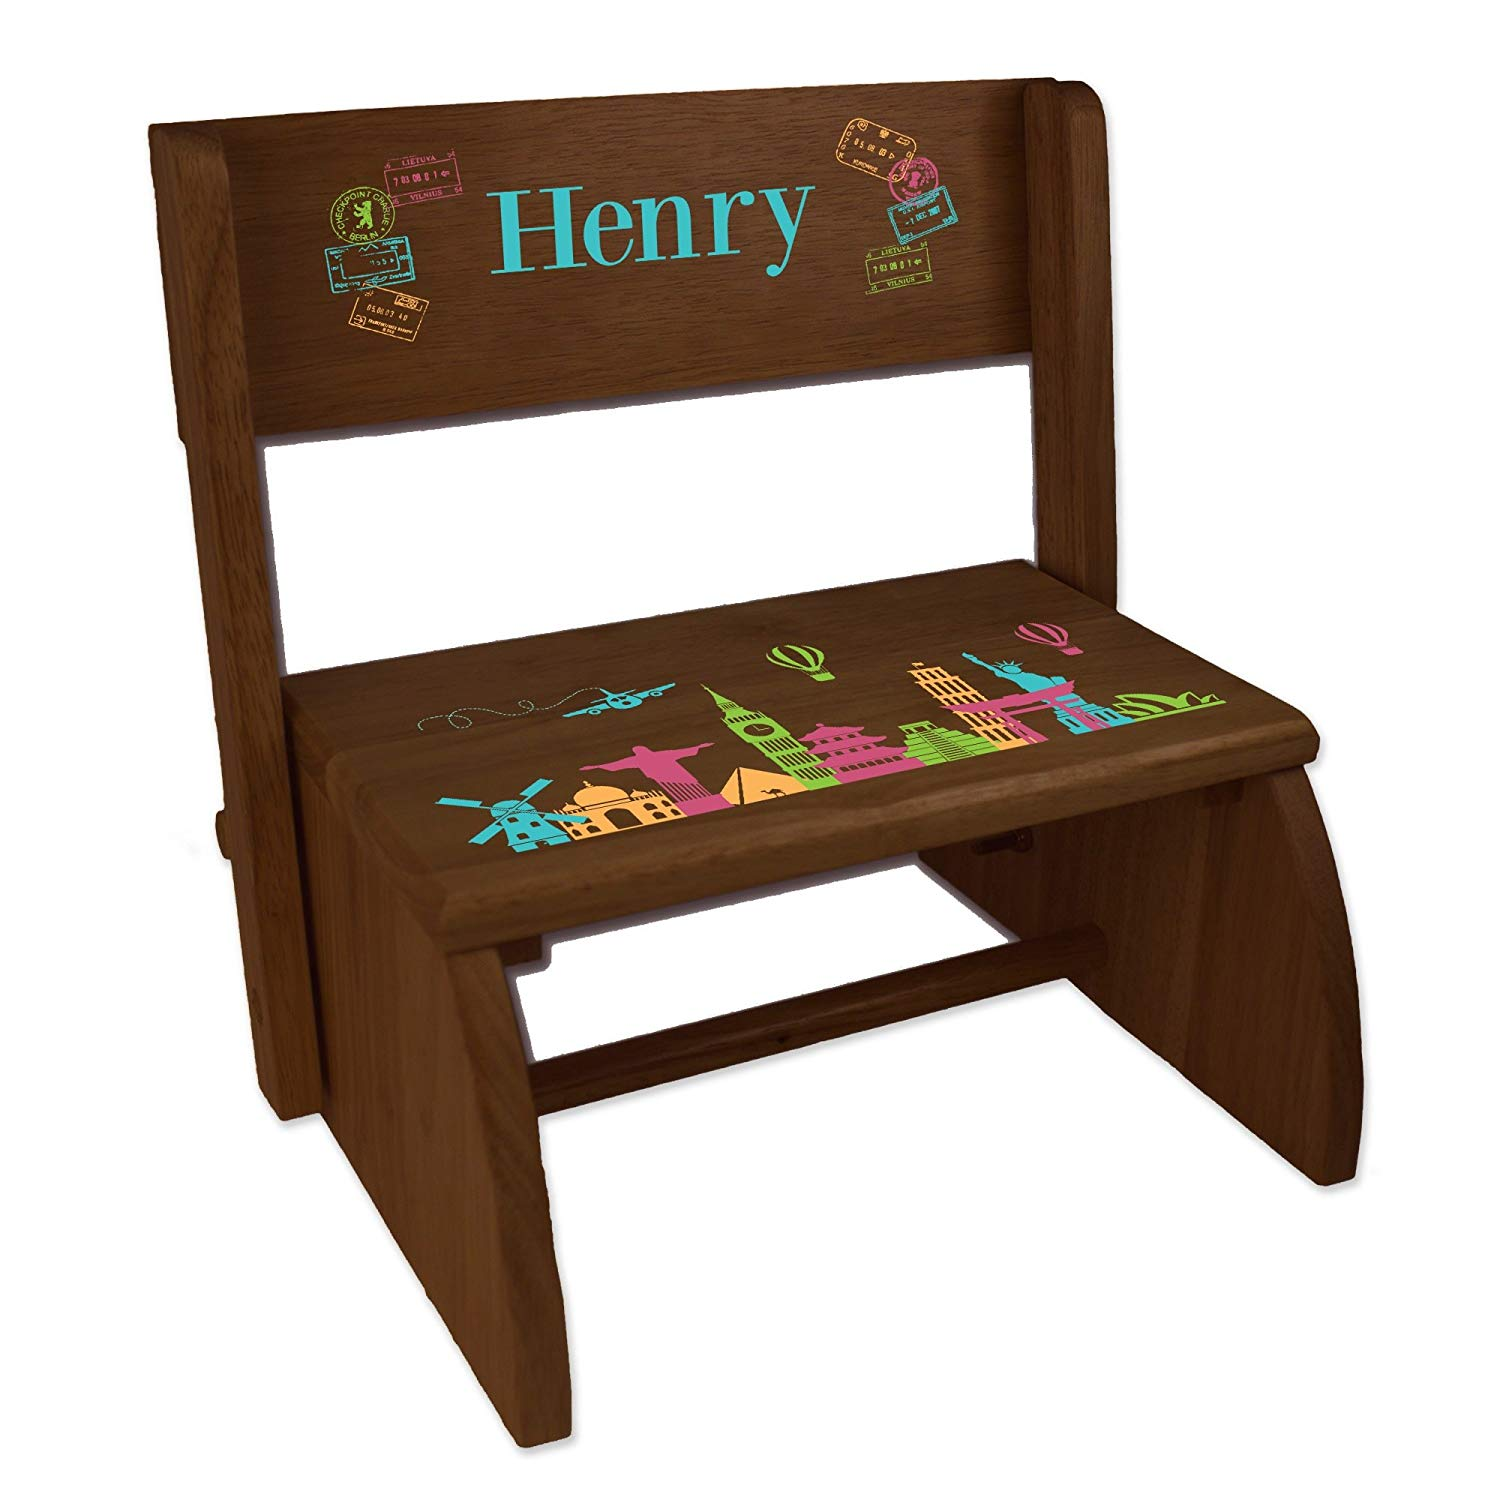 Personalized World Travel Pink Espresso Wooden Folding Stool and Seat